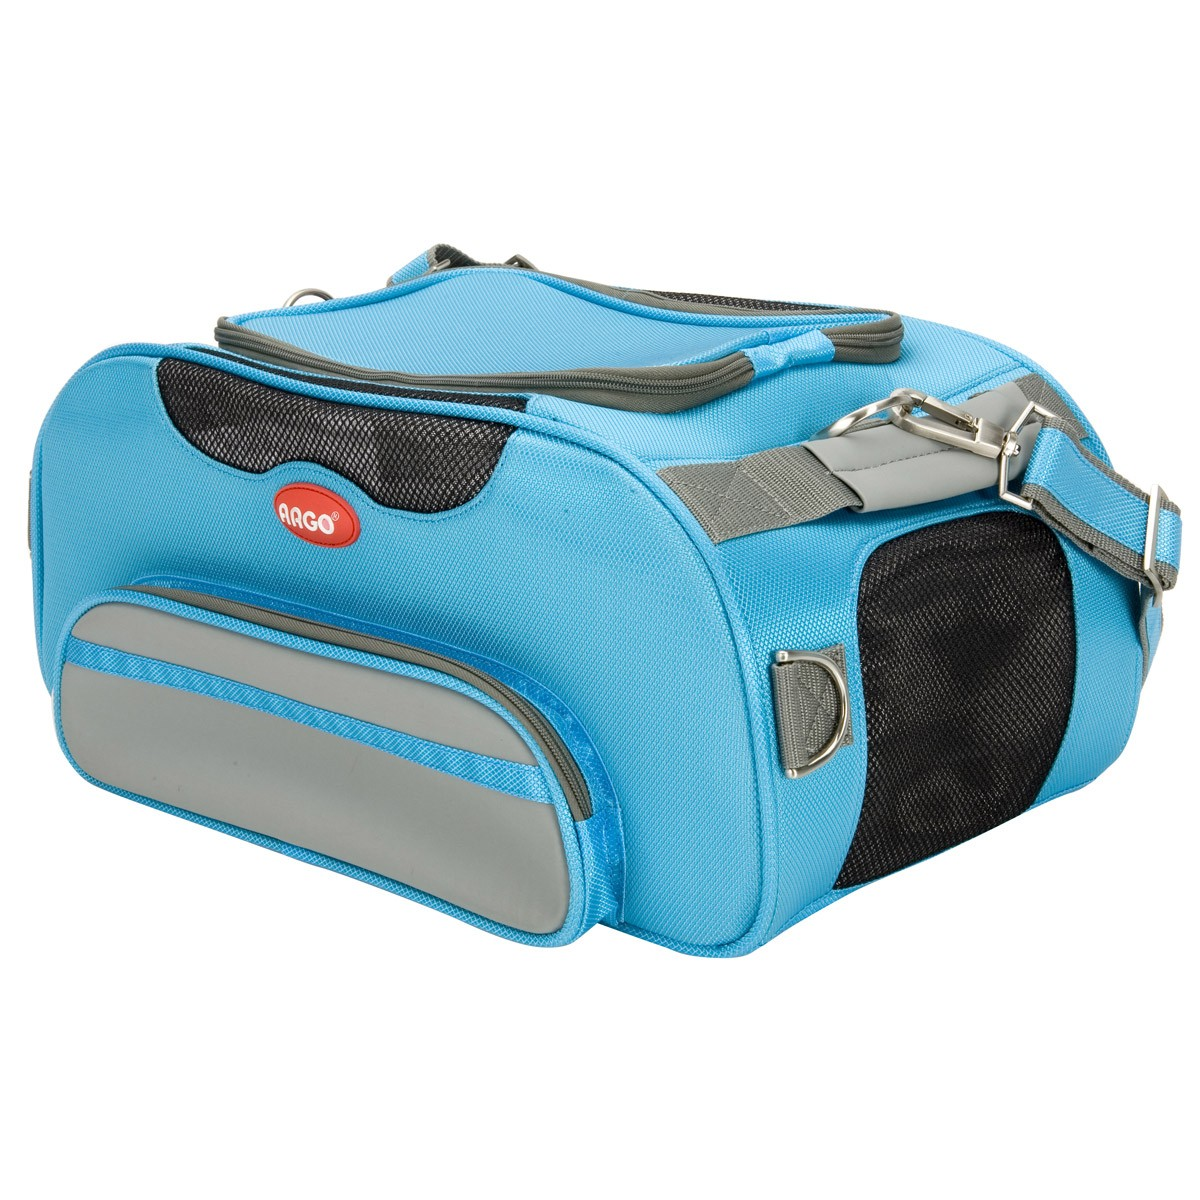 e3110d2957 ARGO Aero-Pet Airline Approved Carrier Berry Blue Small - 18.5 in · Zoom